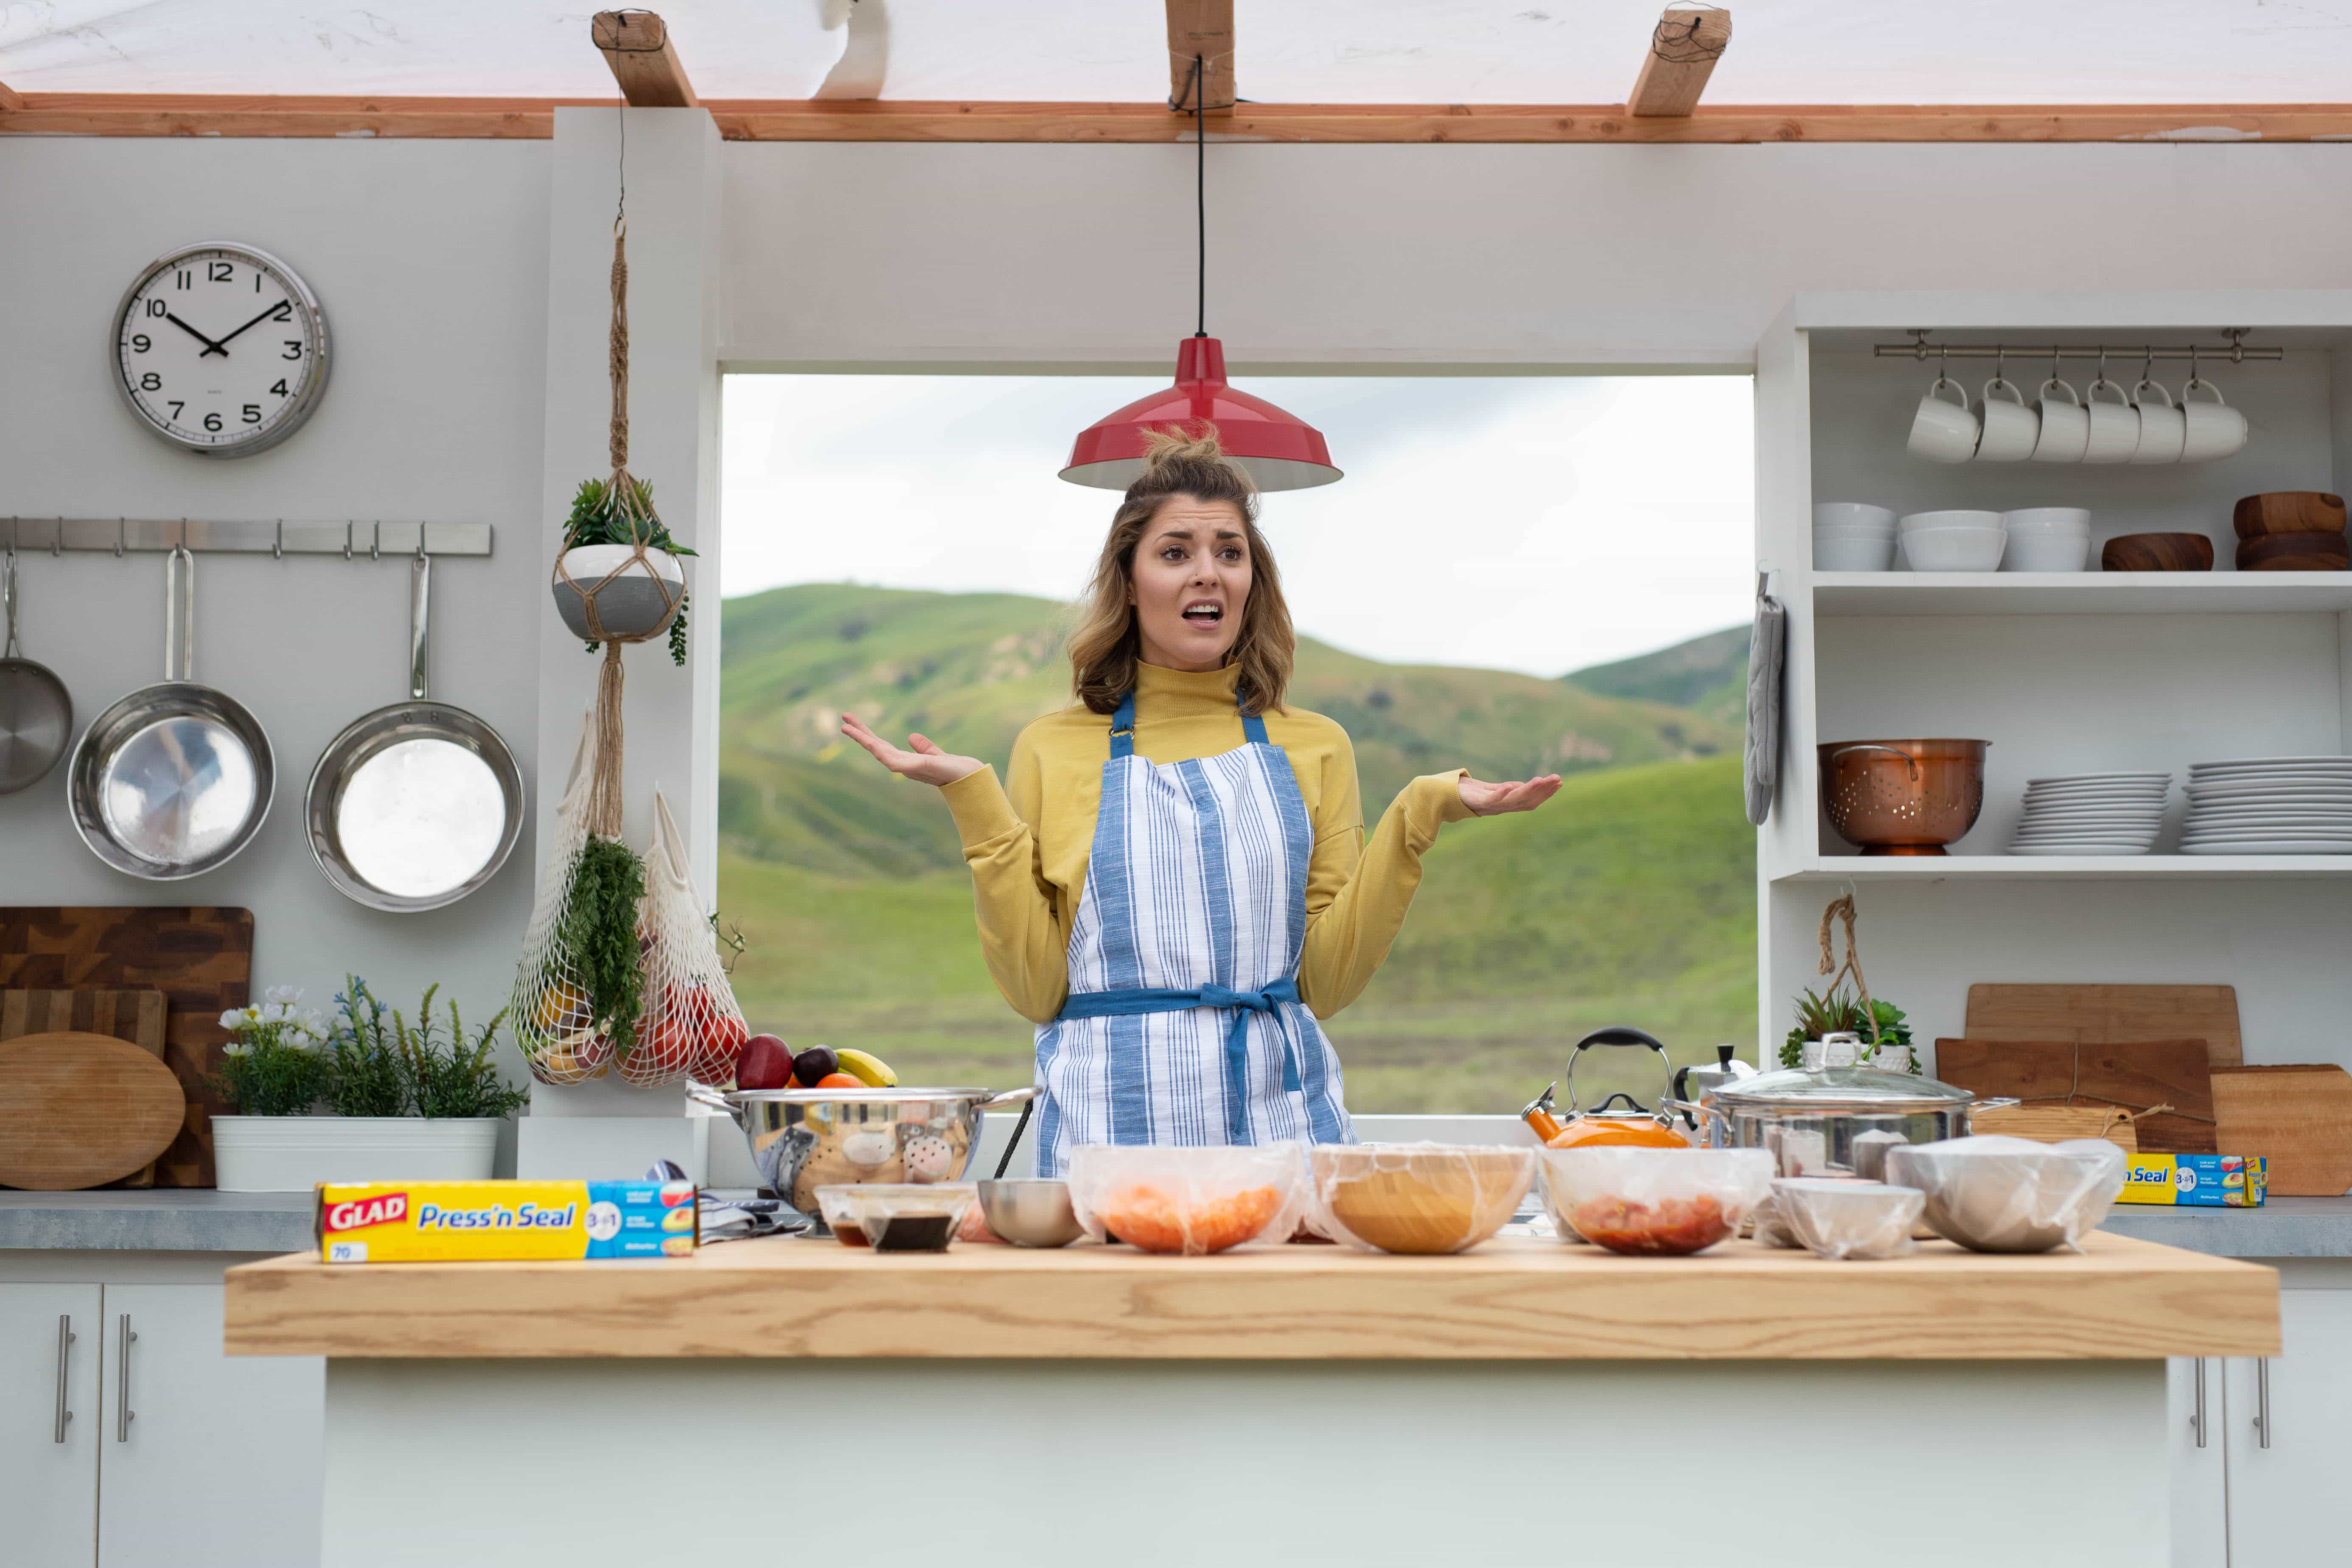 YouTube influencer Grace Helbig making a poke bowl in a moving kitchen for Glad Press